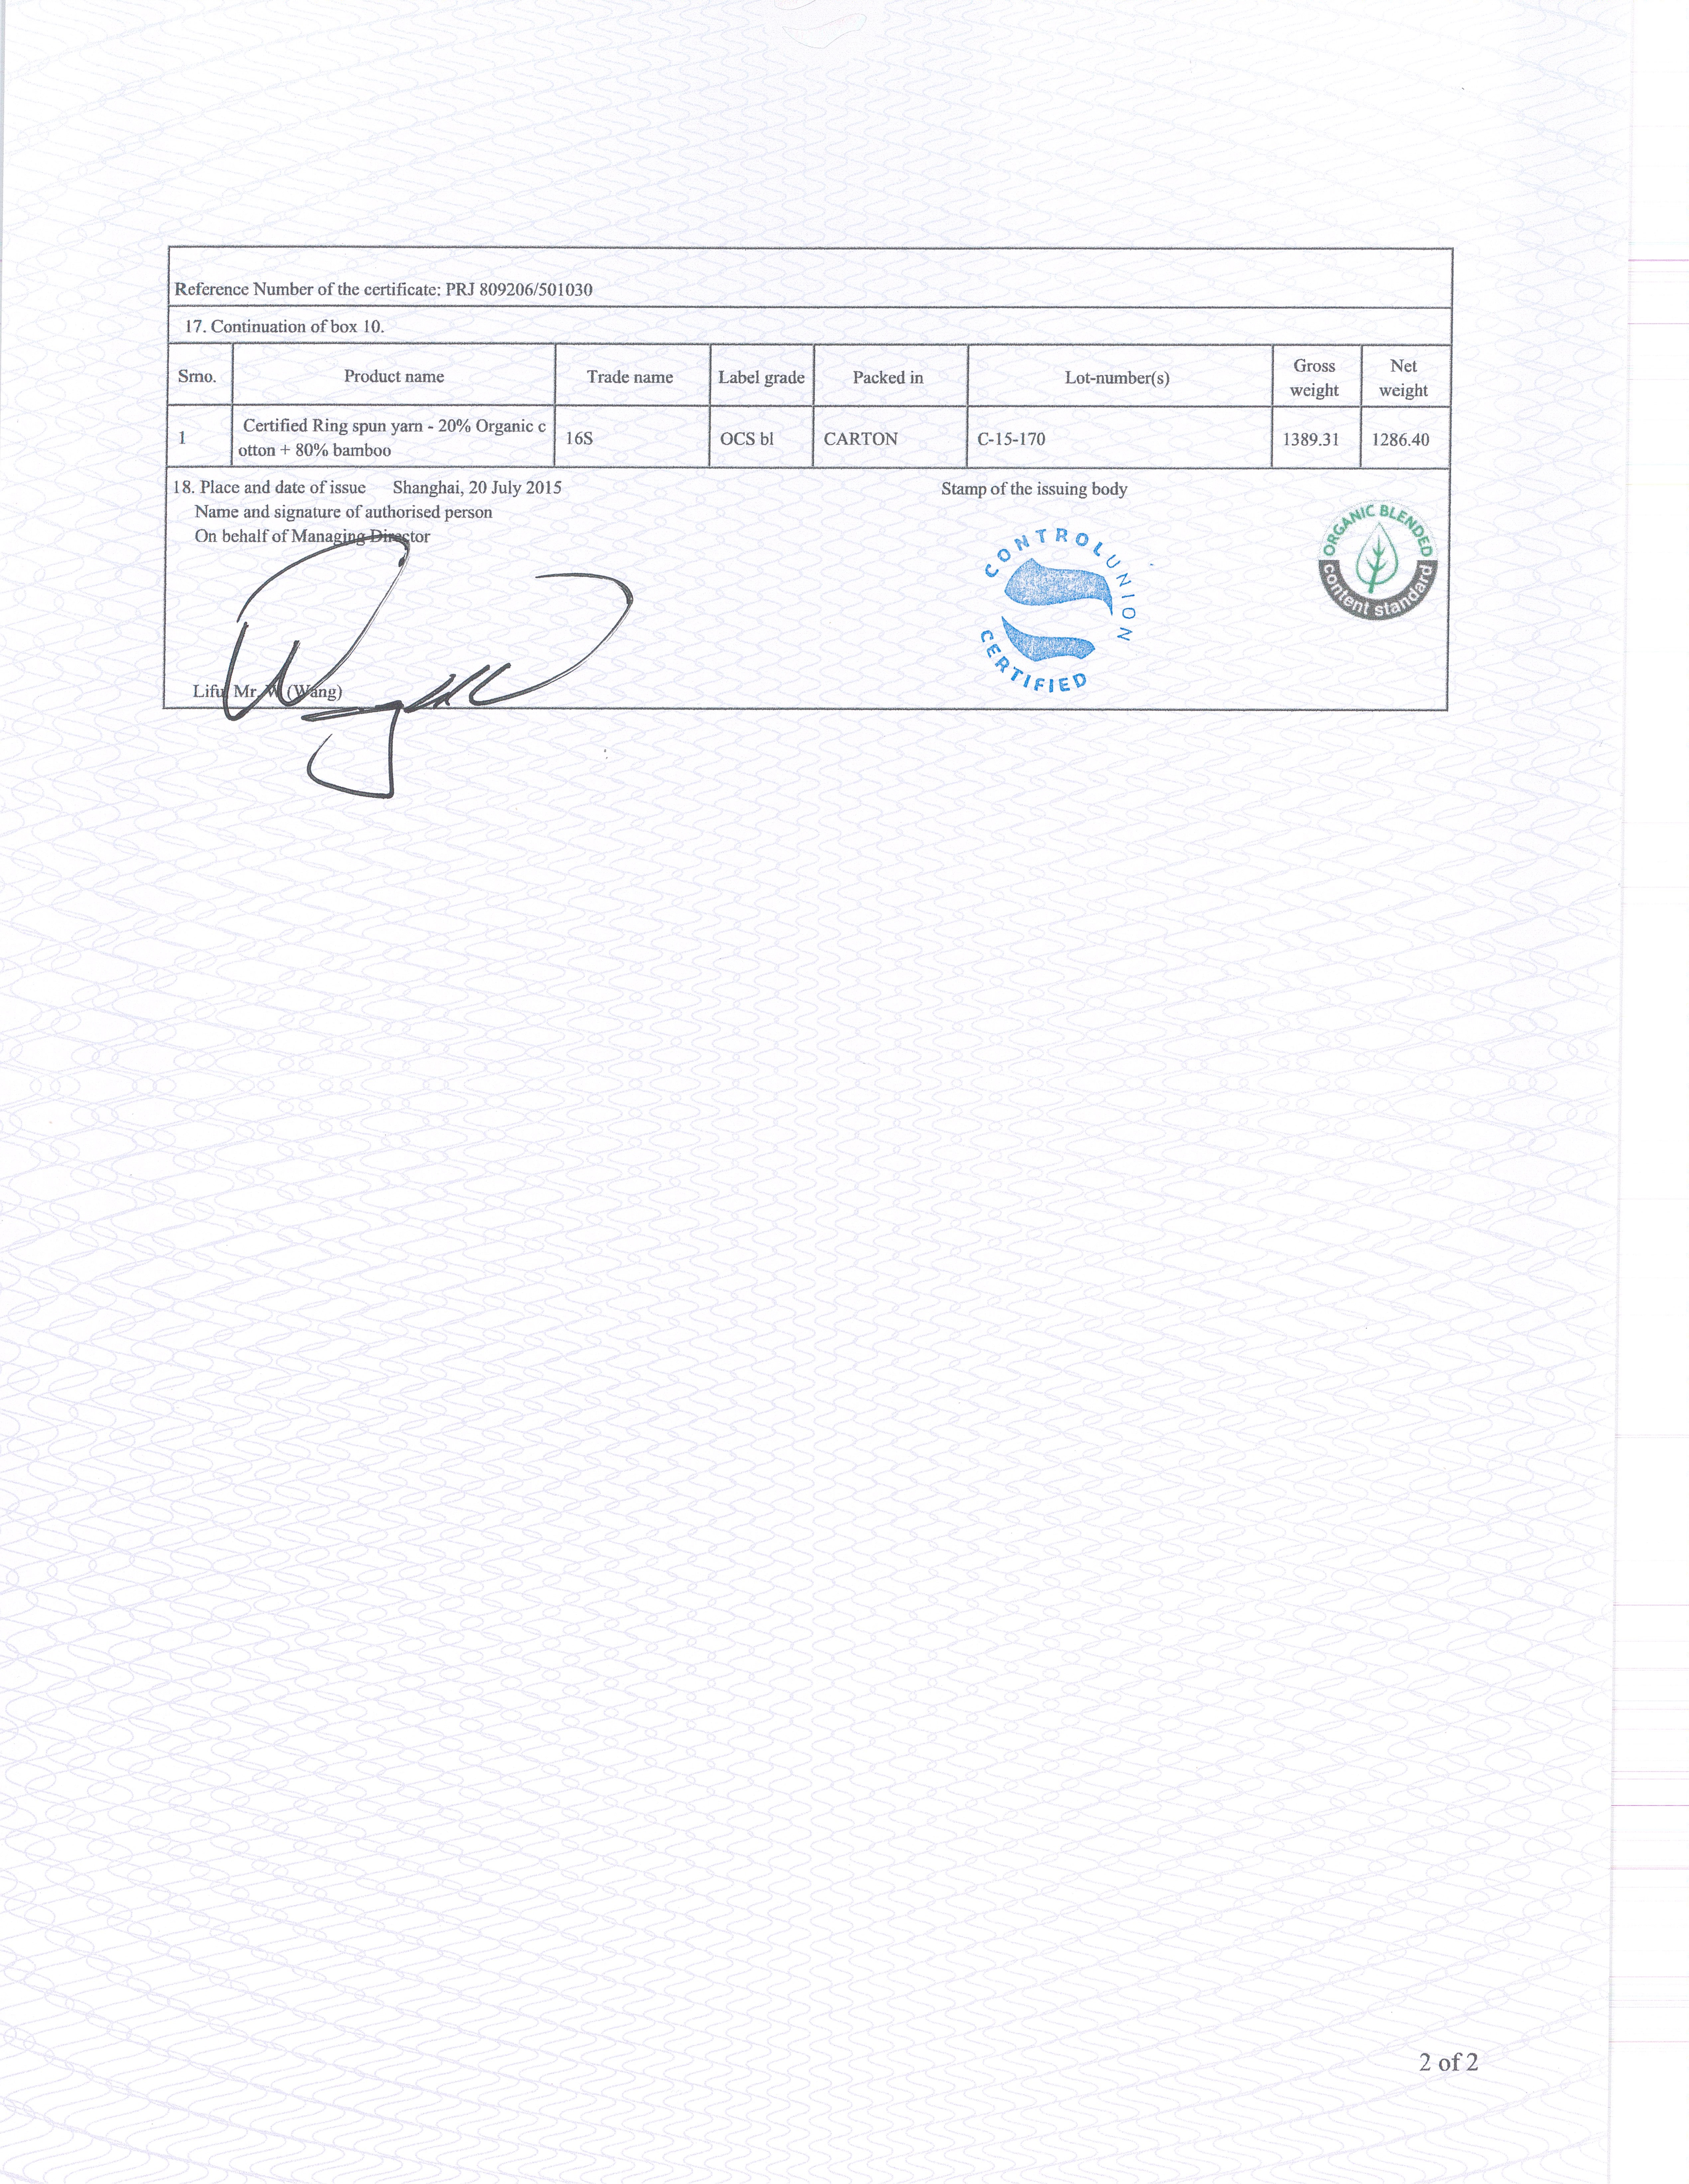 Bamboo Cotton Fleece Certificate Page 2